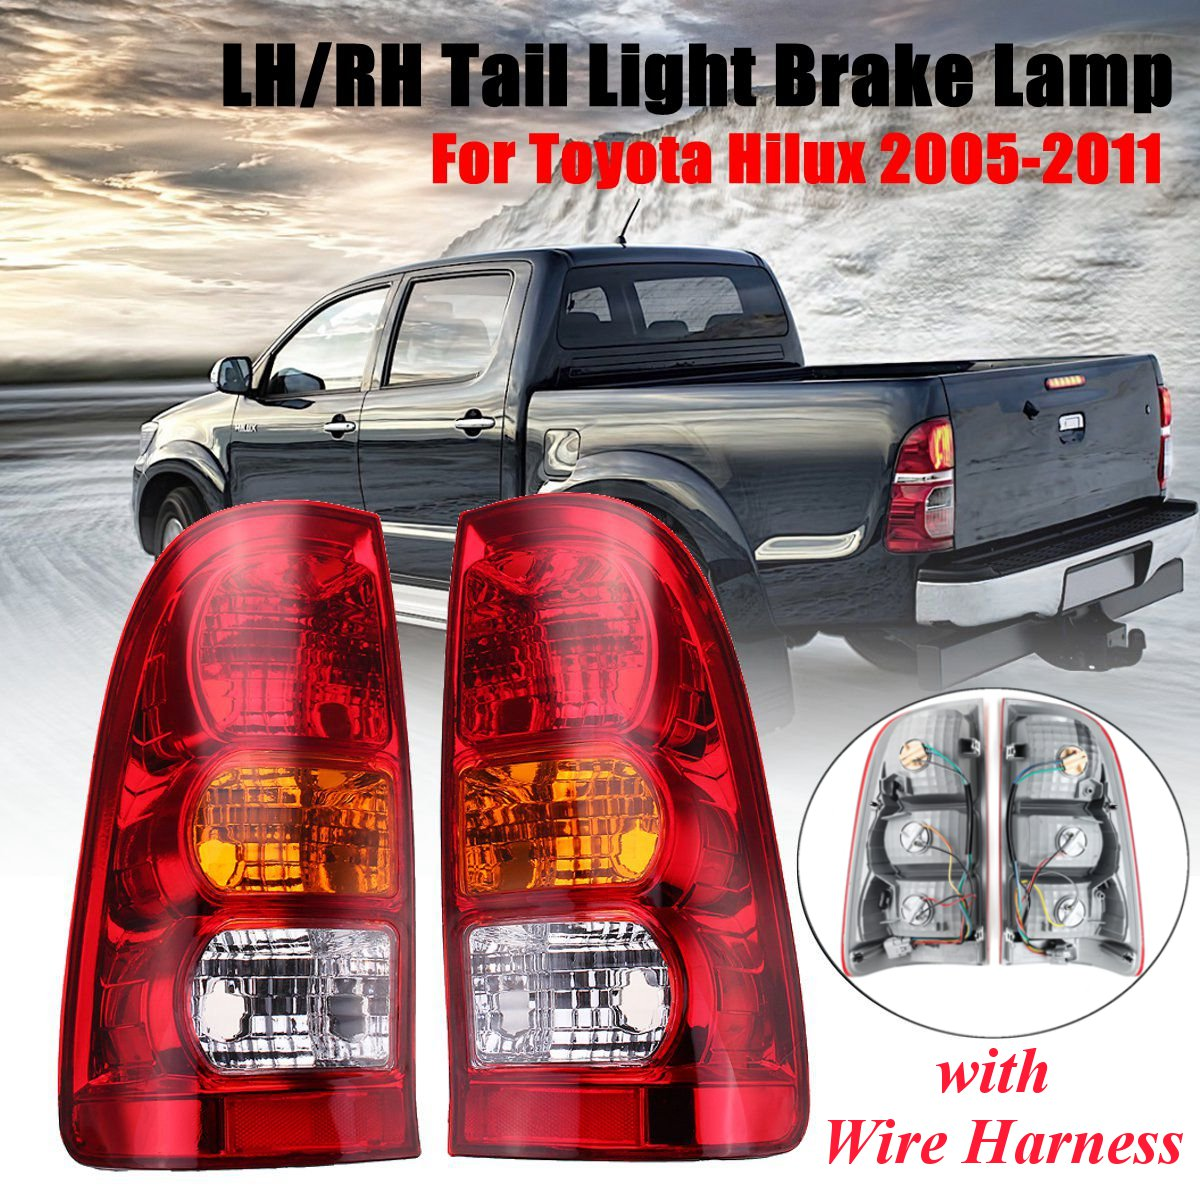 For Toyota Hilux 2005 2006 2007 2008 2009 2010 2011 Pair Red Tail Lamp Rear Tail Light Brake Lamp With Wire HarnessFor Toyota Hilux 2005 2006 2007 2008 2009 2010 2011 Pair Red Tail Lamp Rear Tail Light Brake Lamp With Wire Harness